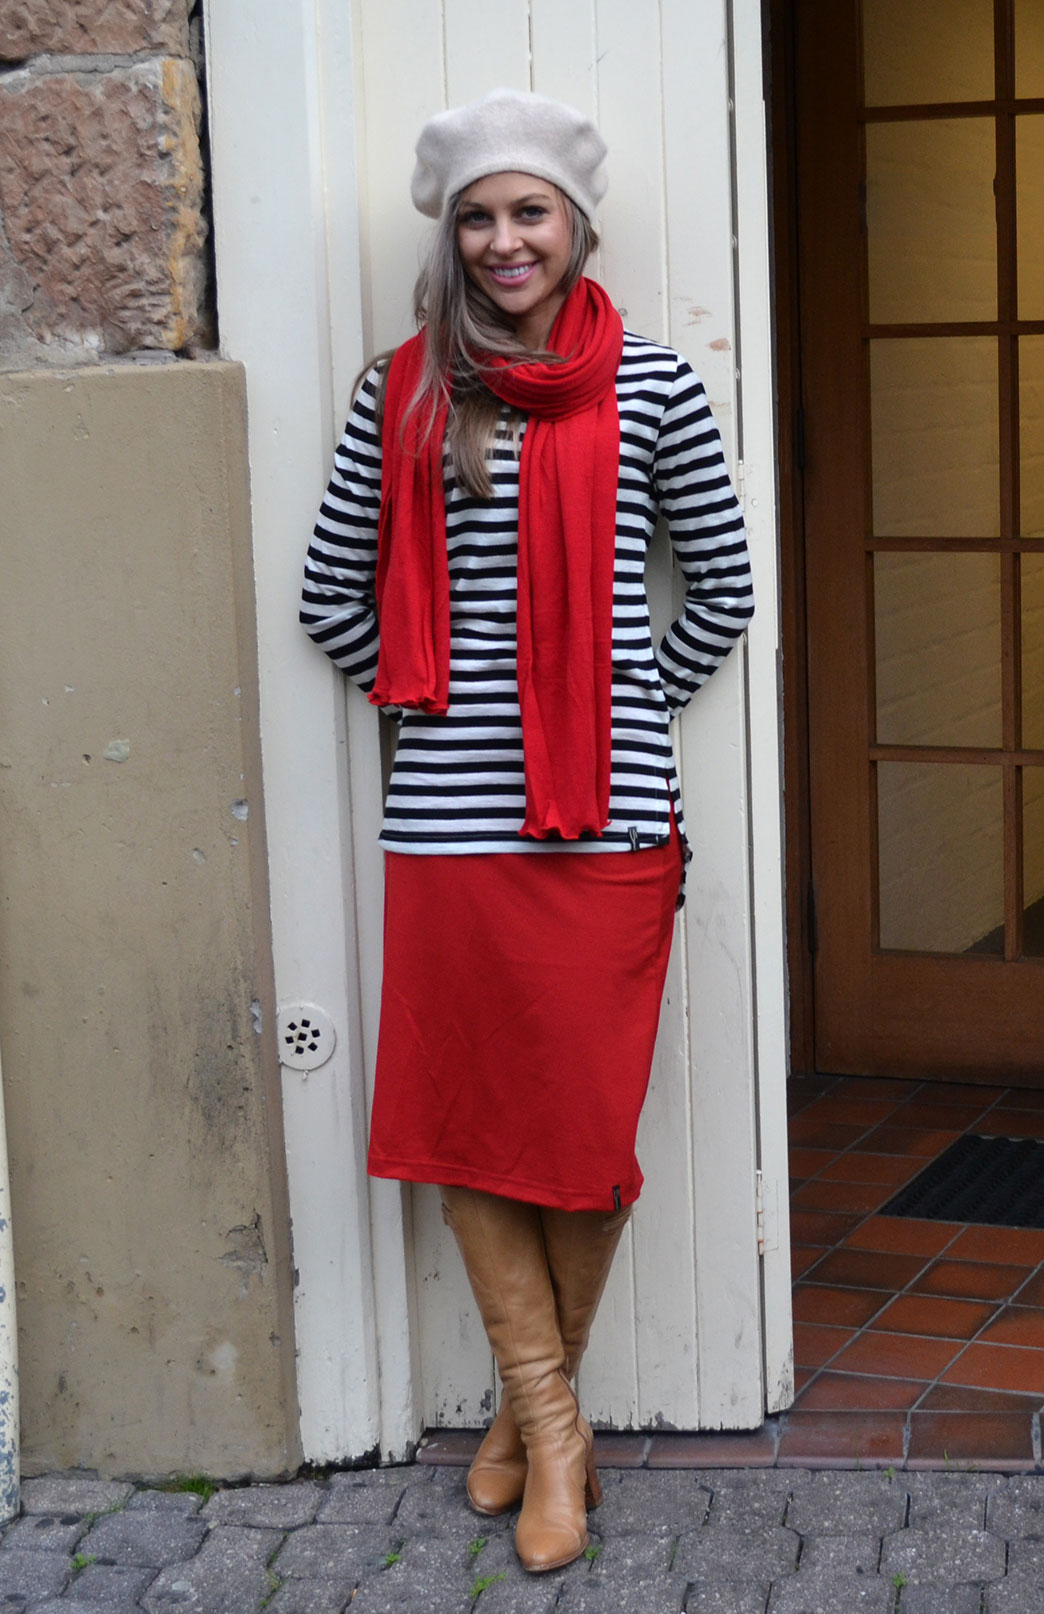 A-line Skirt - Women's Red A-Line Wool Skirt with elastic waistband - Smitten Merino Tasmania Australia